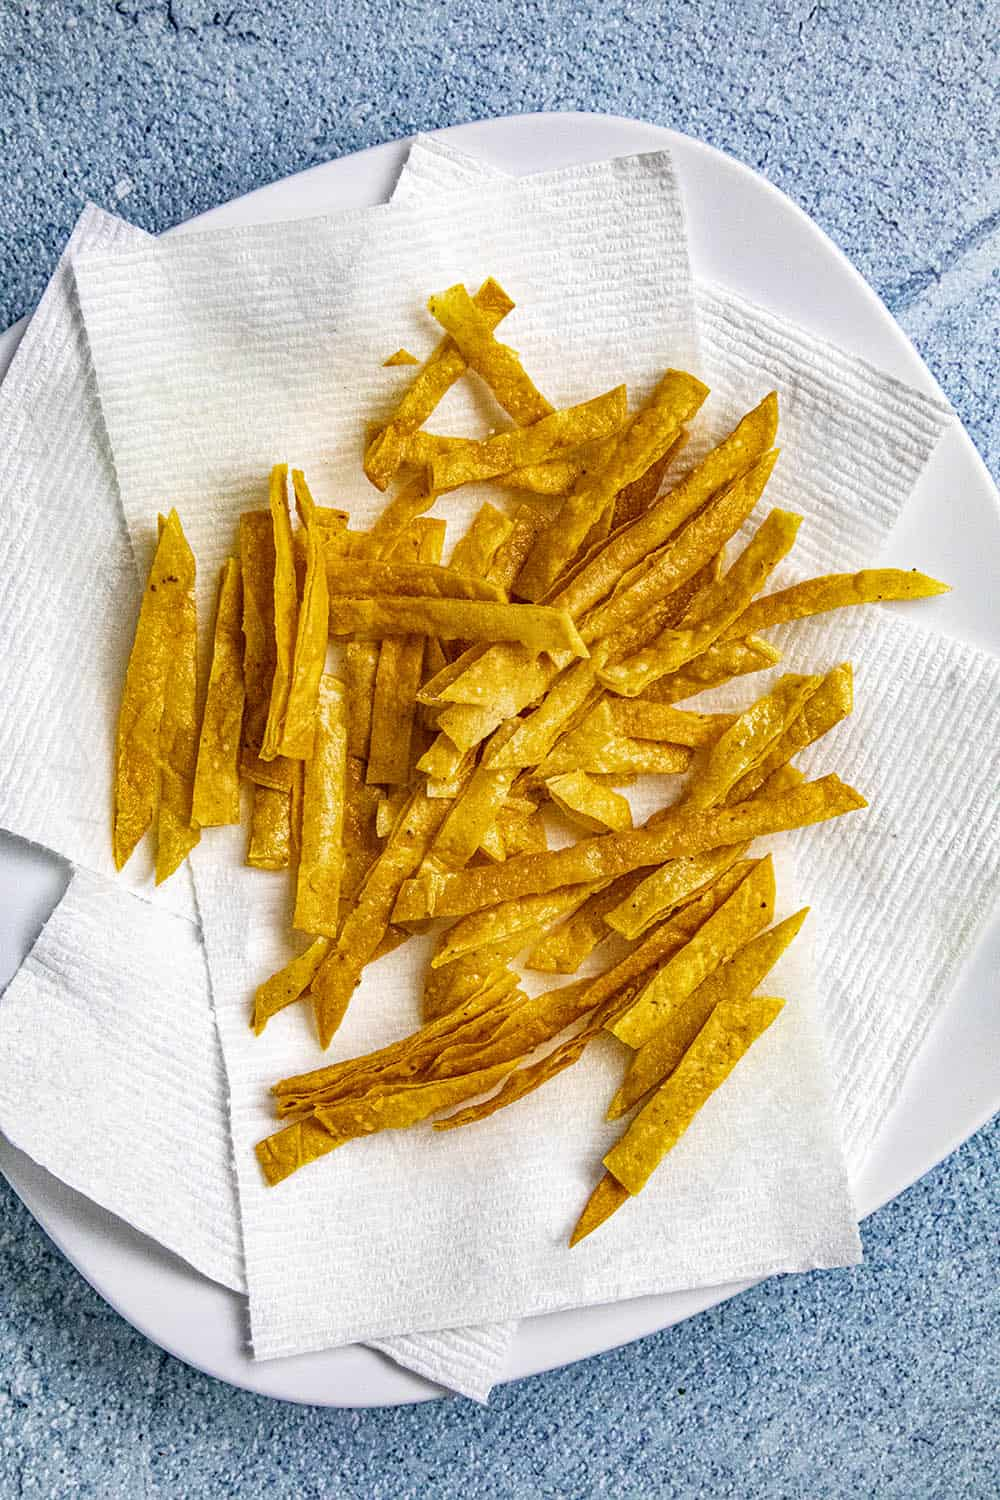 Crispy homemade fried tortilla strips draining on a plate